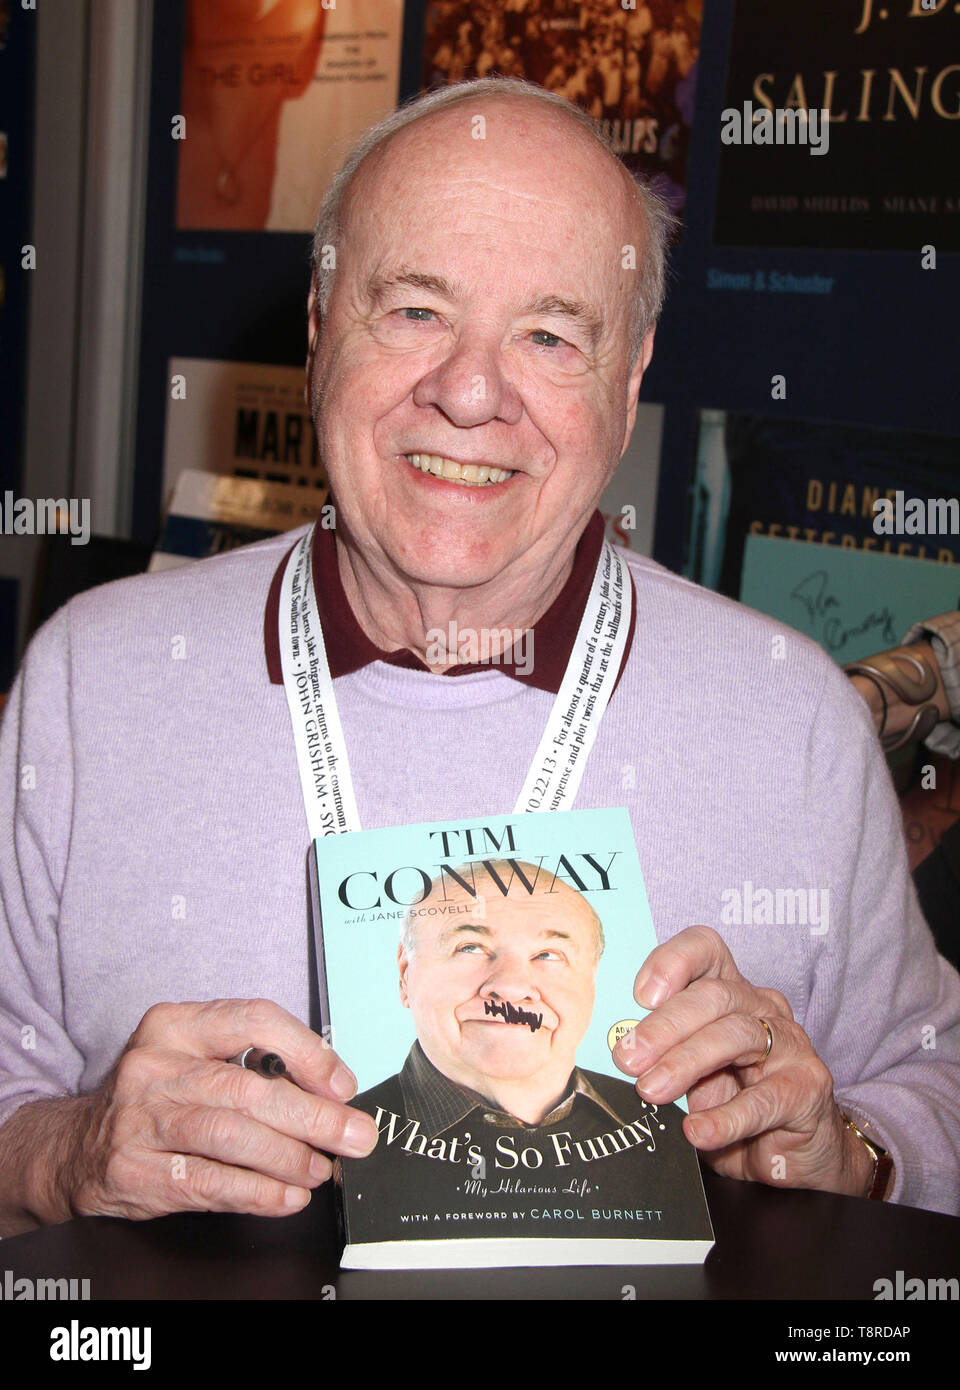 May 14, 2019: New York, NY, USA: FILE: Actor and comedian TM CONWAY, best known for his work on ''The Carol Burnett Show,'' died on Tuesday morning in Los Angeles, according to his publicist. PICTURED: May 30, 2013 - New York, New York, U.S. - Author/comedian TIM CONWAY attends the 2013 'Book Expo America' held at the Jacob Javits Center. (Credit Image: © Nancy Kaszerman/ZUMAPRESS.com) - Stock Image